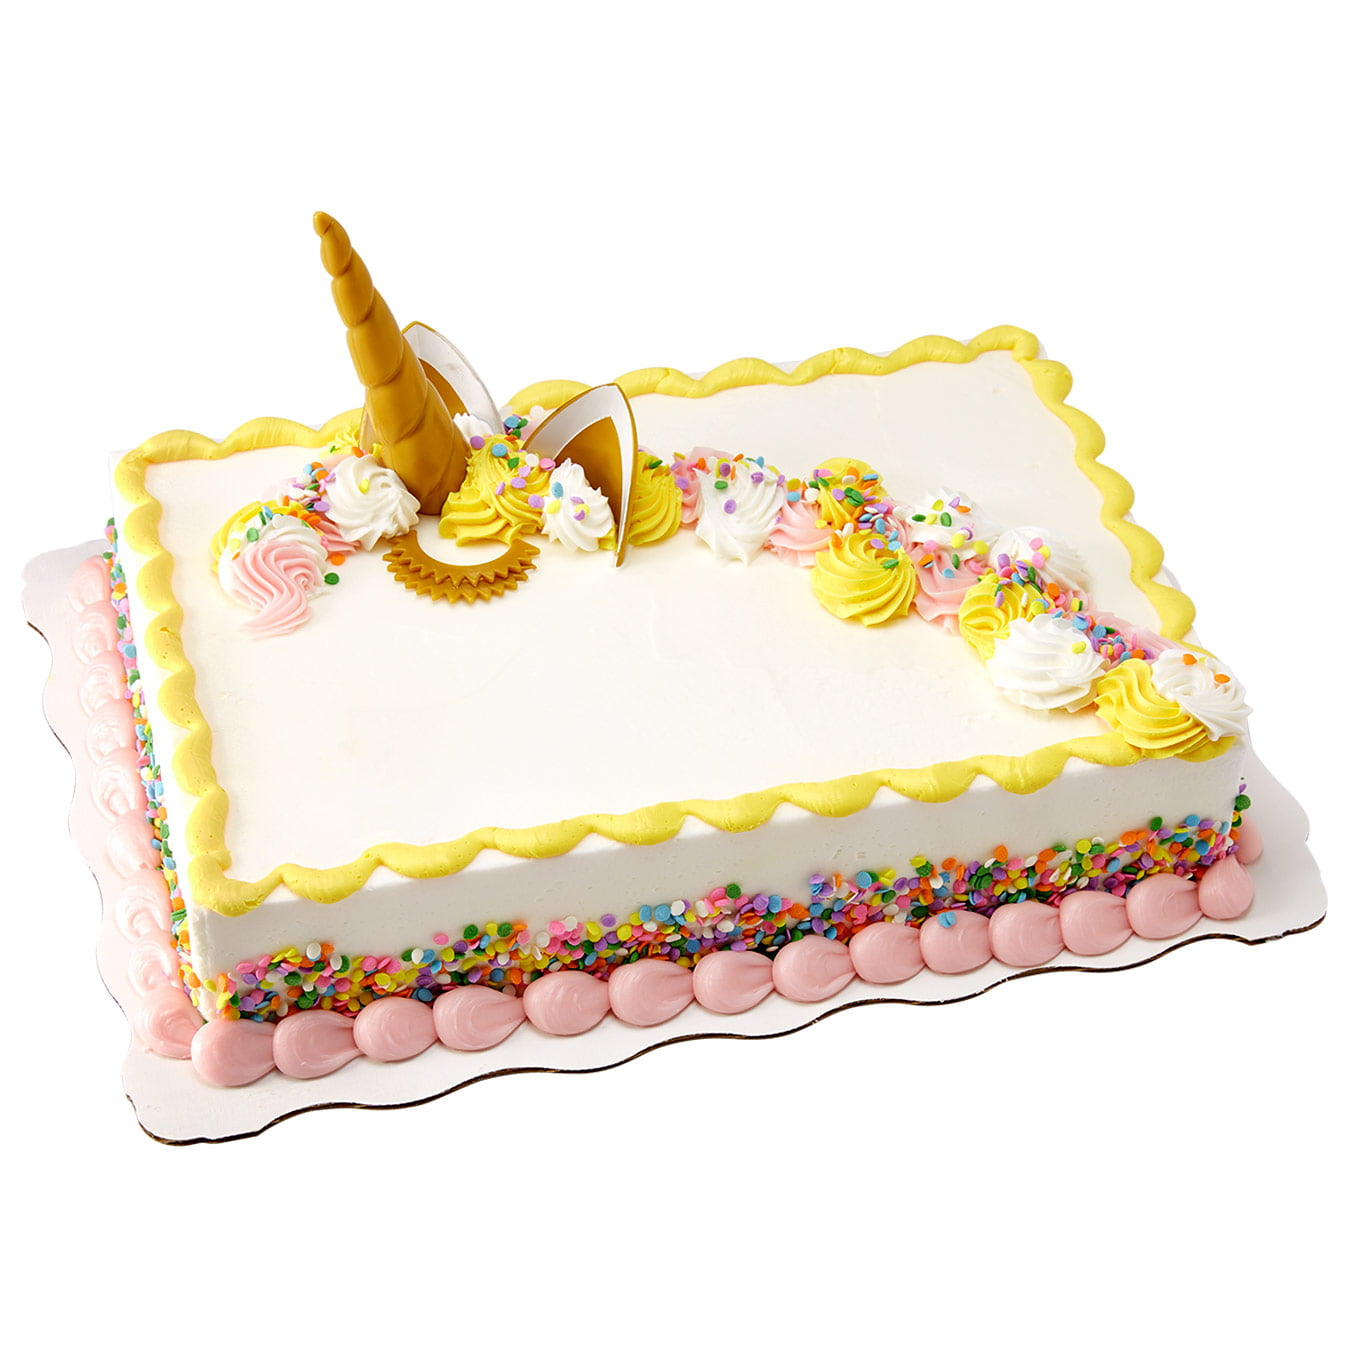 Enjoyable Unicorn Kit Cake Walmart Com Walmart Com Personalised Birthday Cards Veneteletsinfo